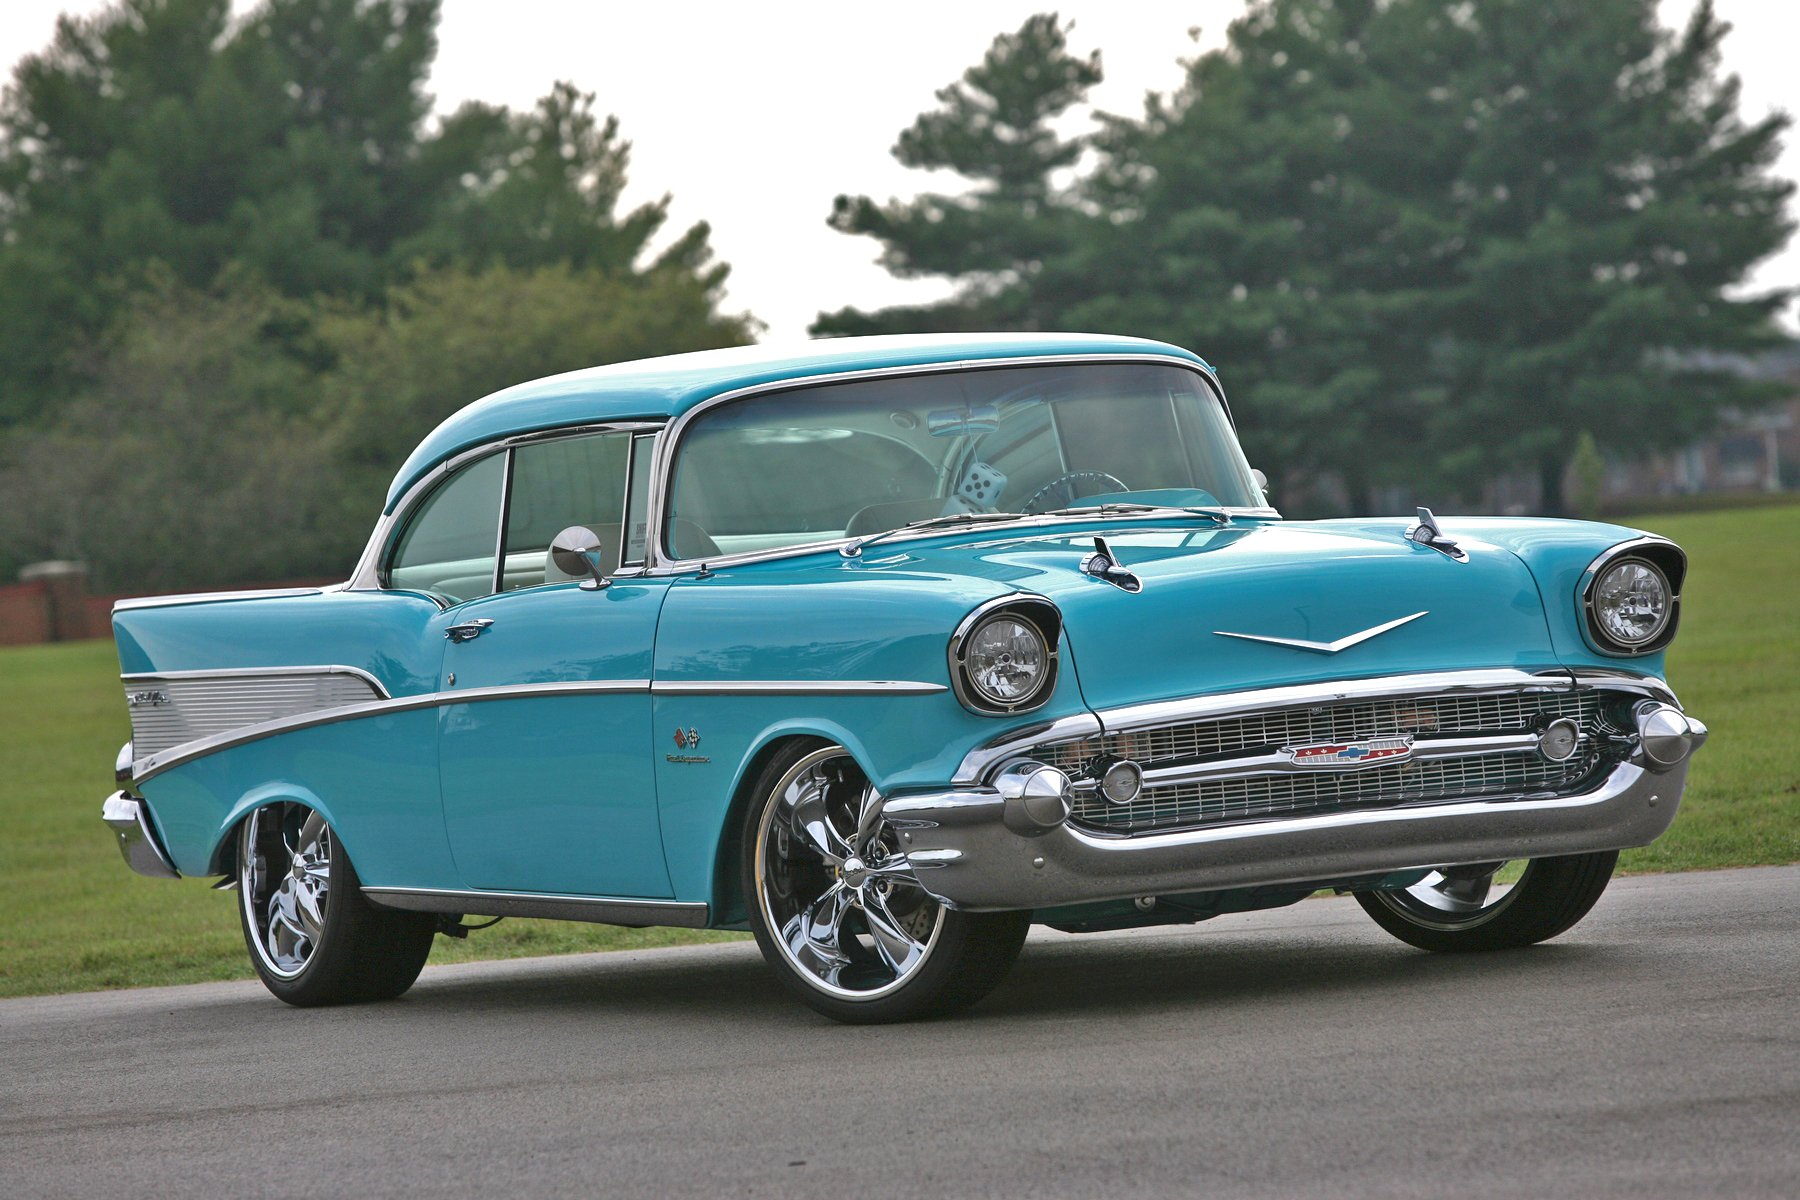 The New Chevelle >> Linsday McLaughlin's Blue '57 Chevy Blends Both Old and New